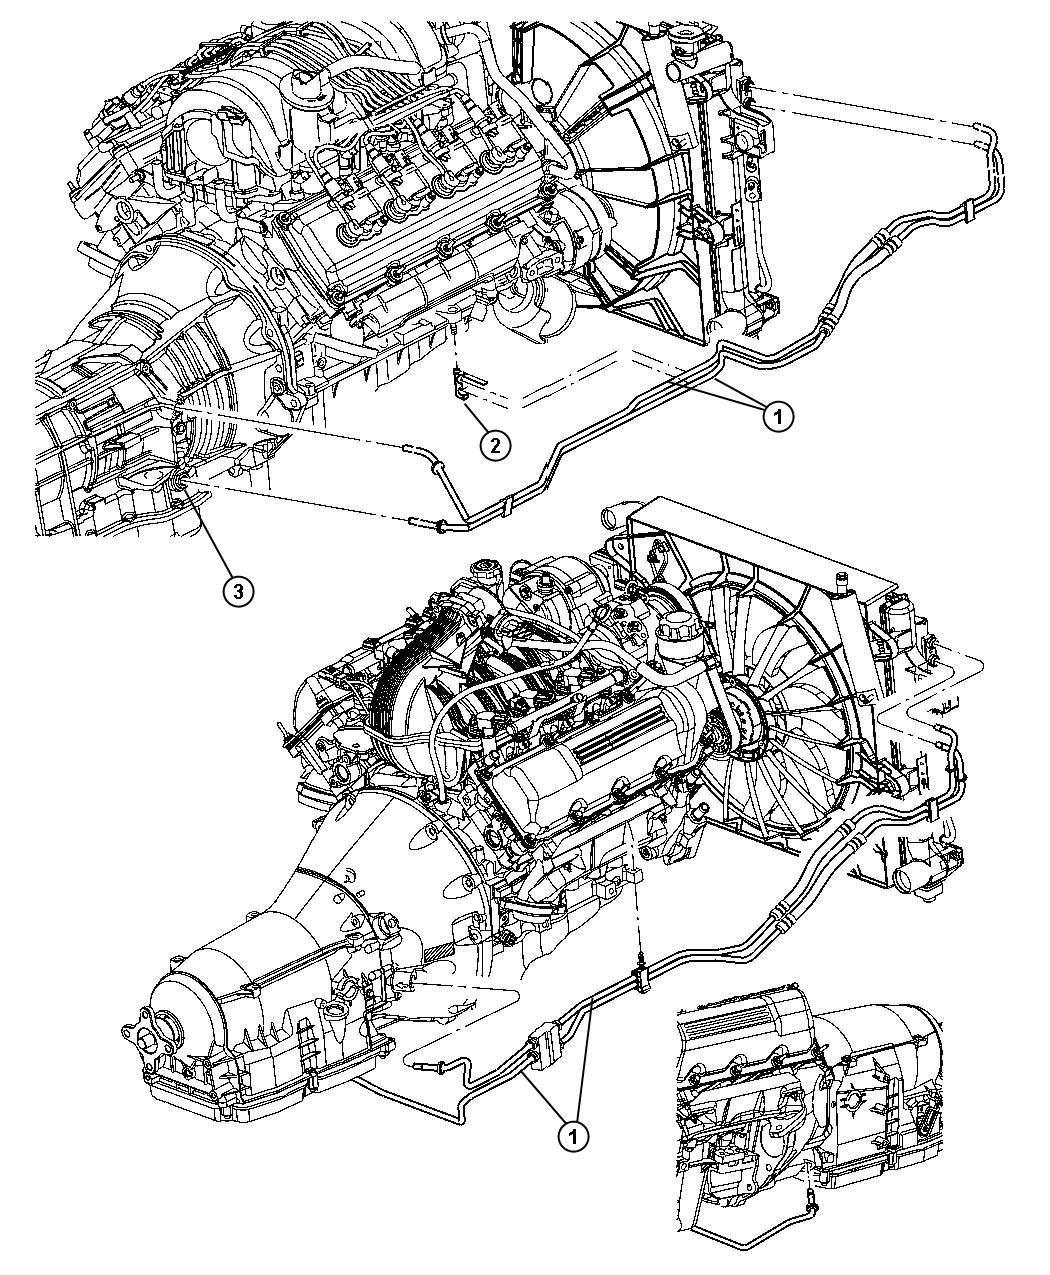 Jeep Grand Cherokee Used For Hose And Tube Used For